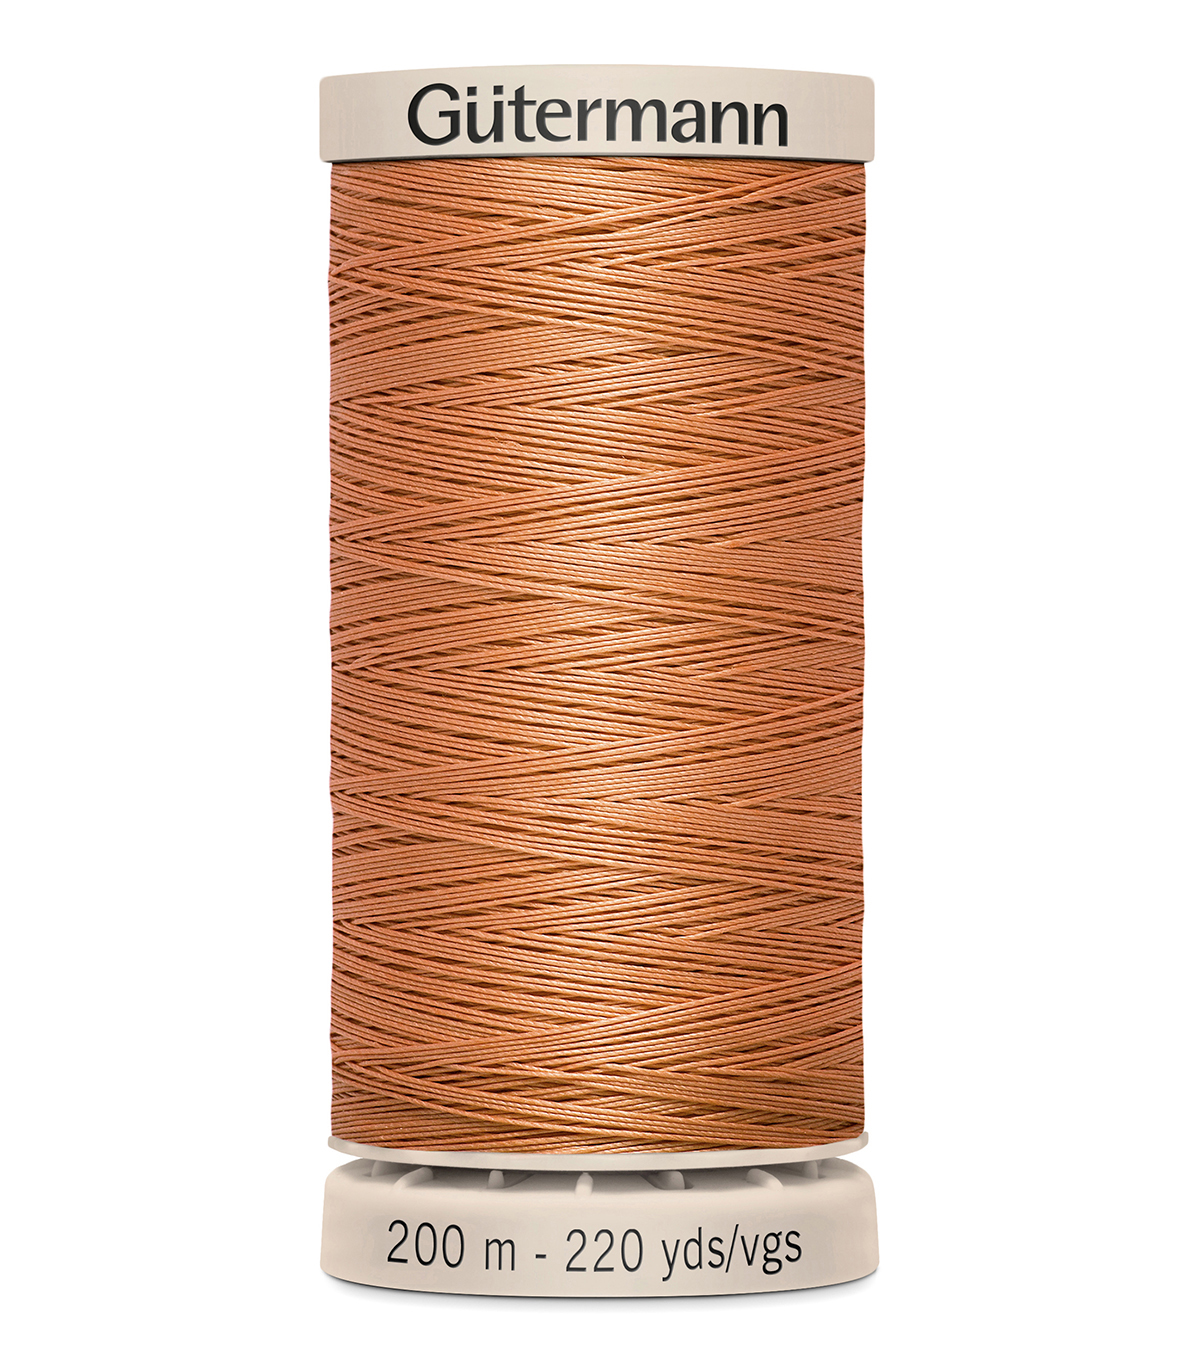 Gutermann Hand Quilting Thread 200 Meters (220 Yrds)-Primary, Light Dusk #2045